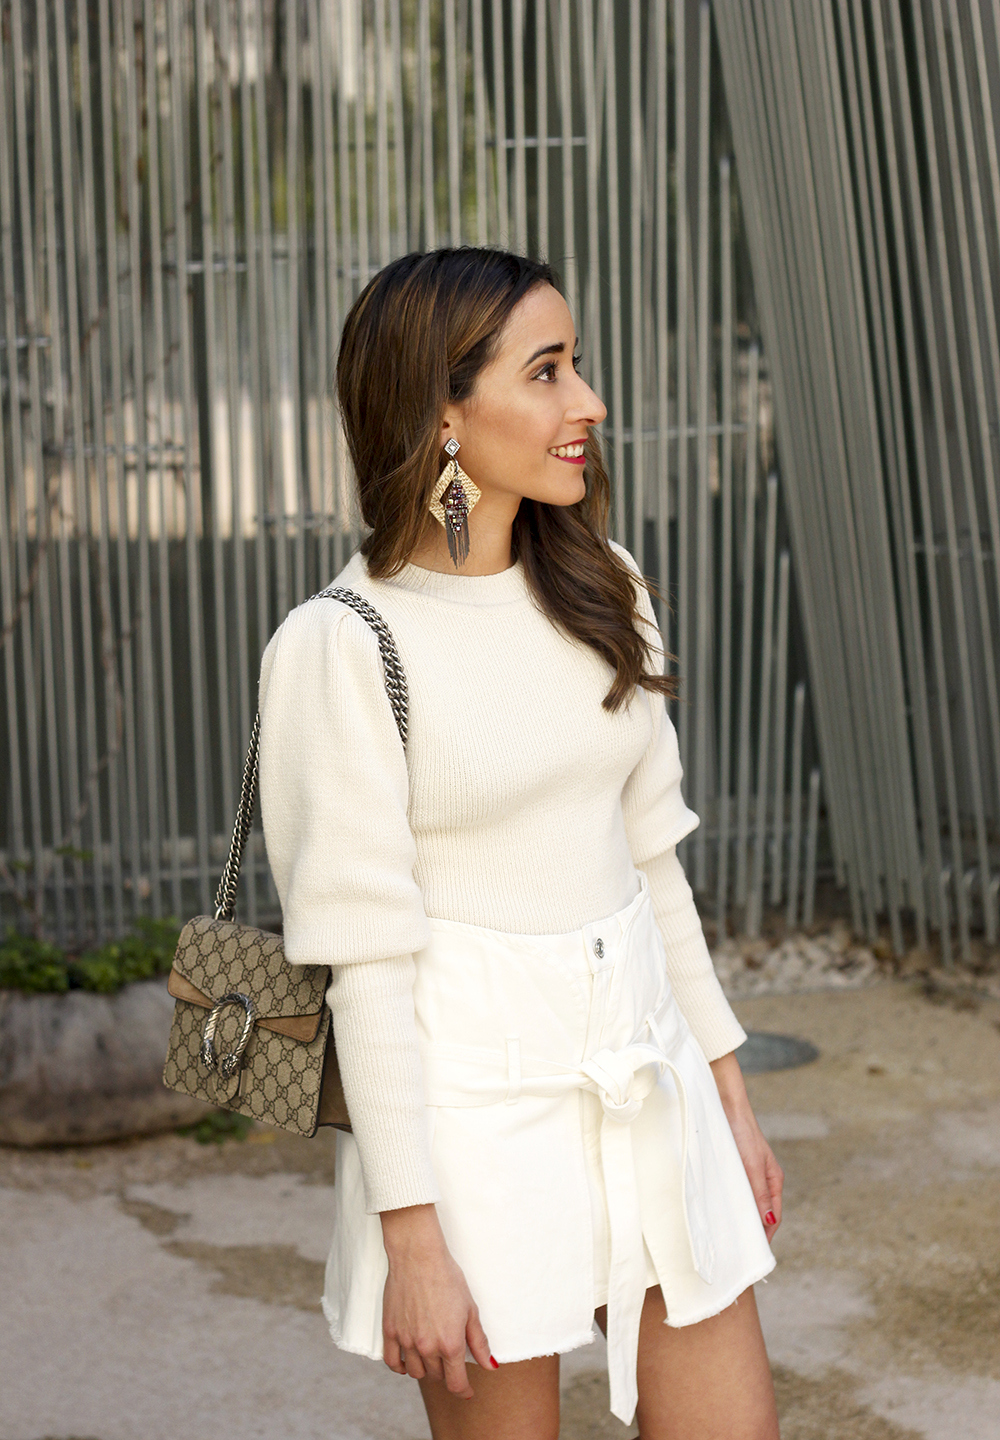 White skirt white sweater blue light mules uterqüe gucci bag céline sunnies spring outfit style outfit07